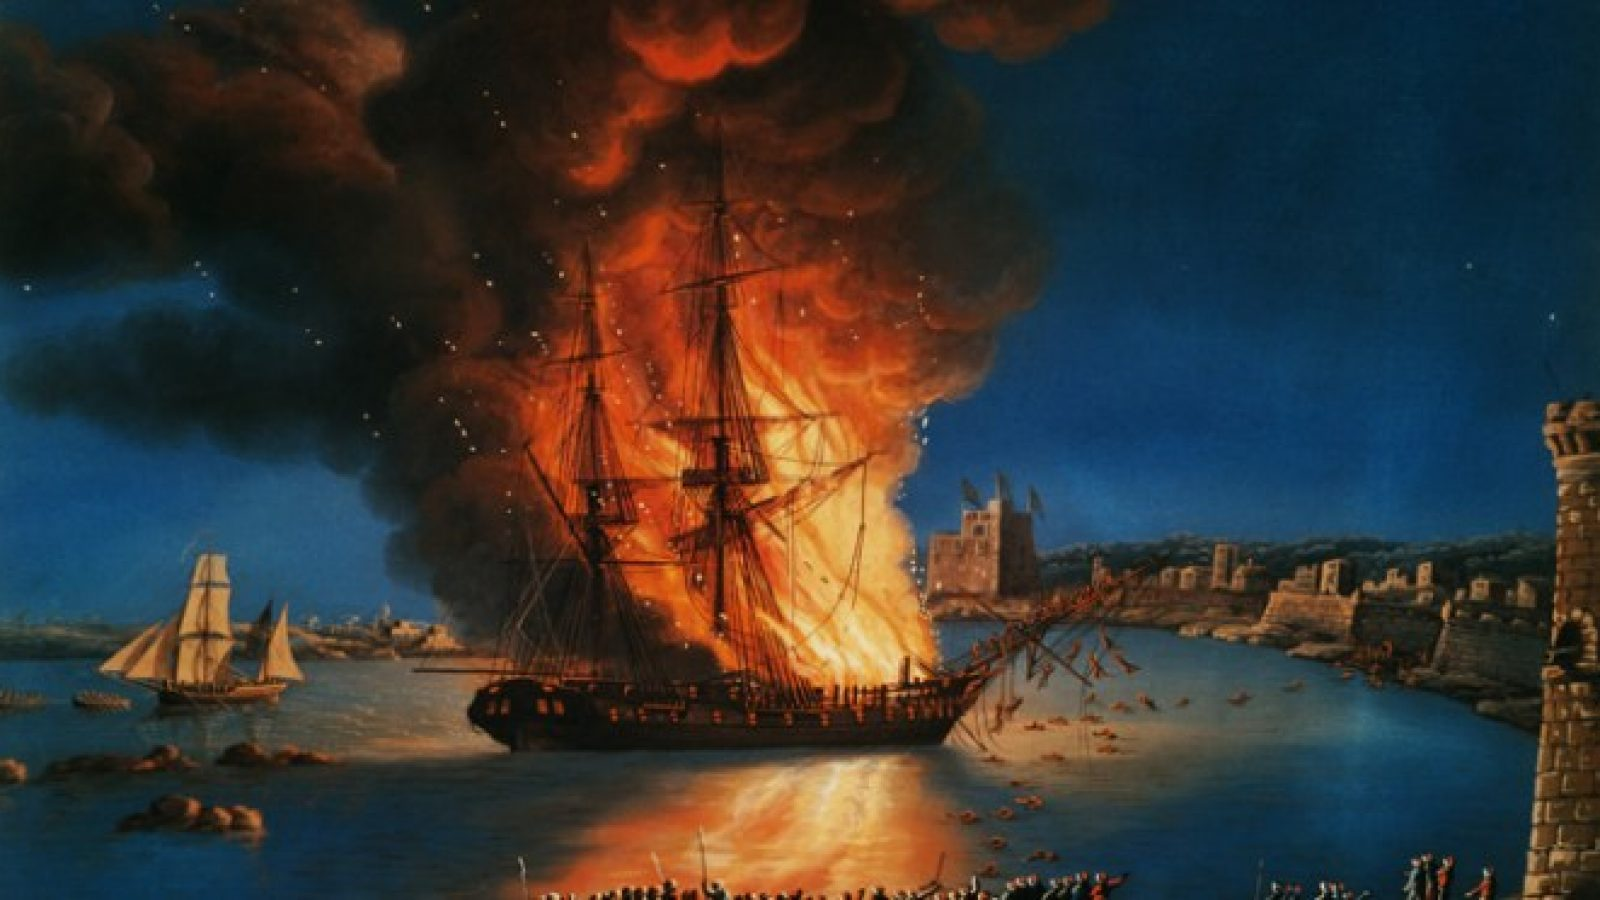 A painting of the USS Philadelphia burning in a harbor